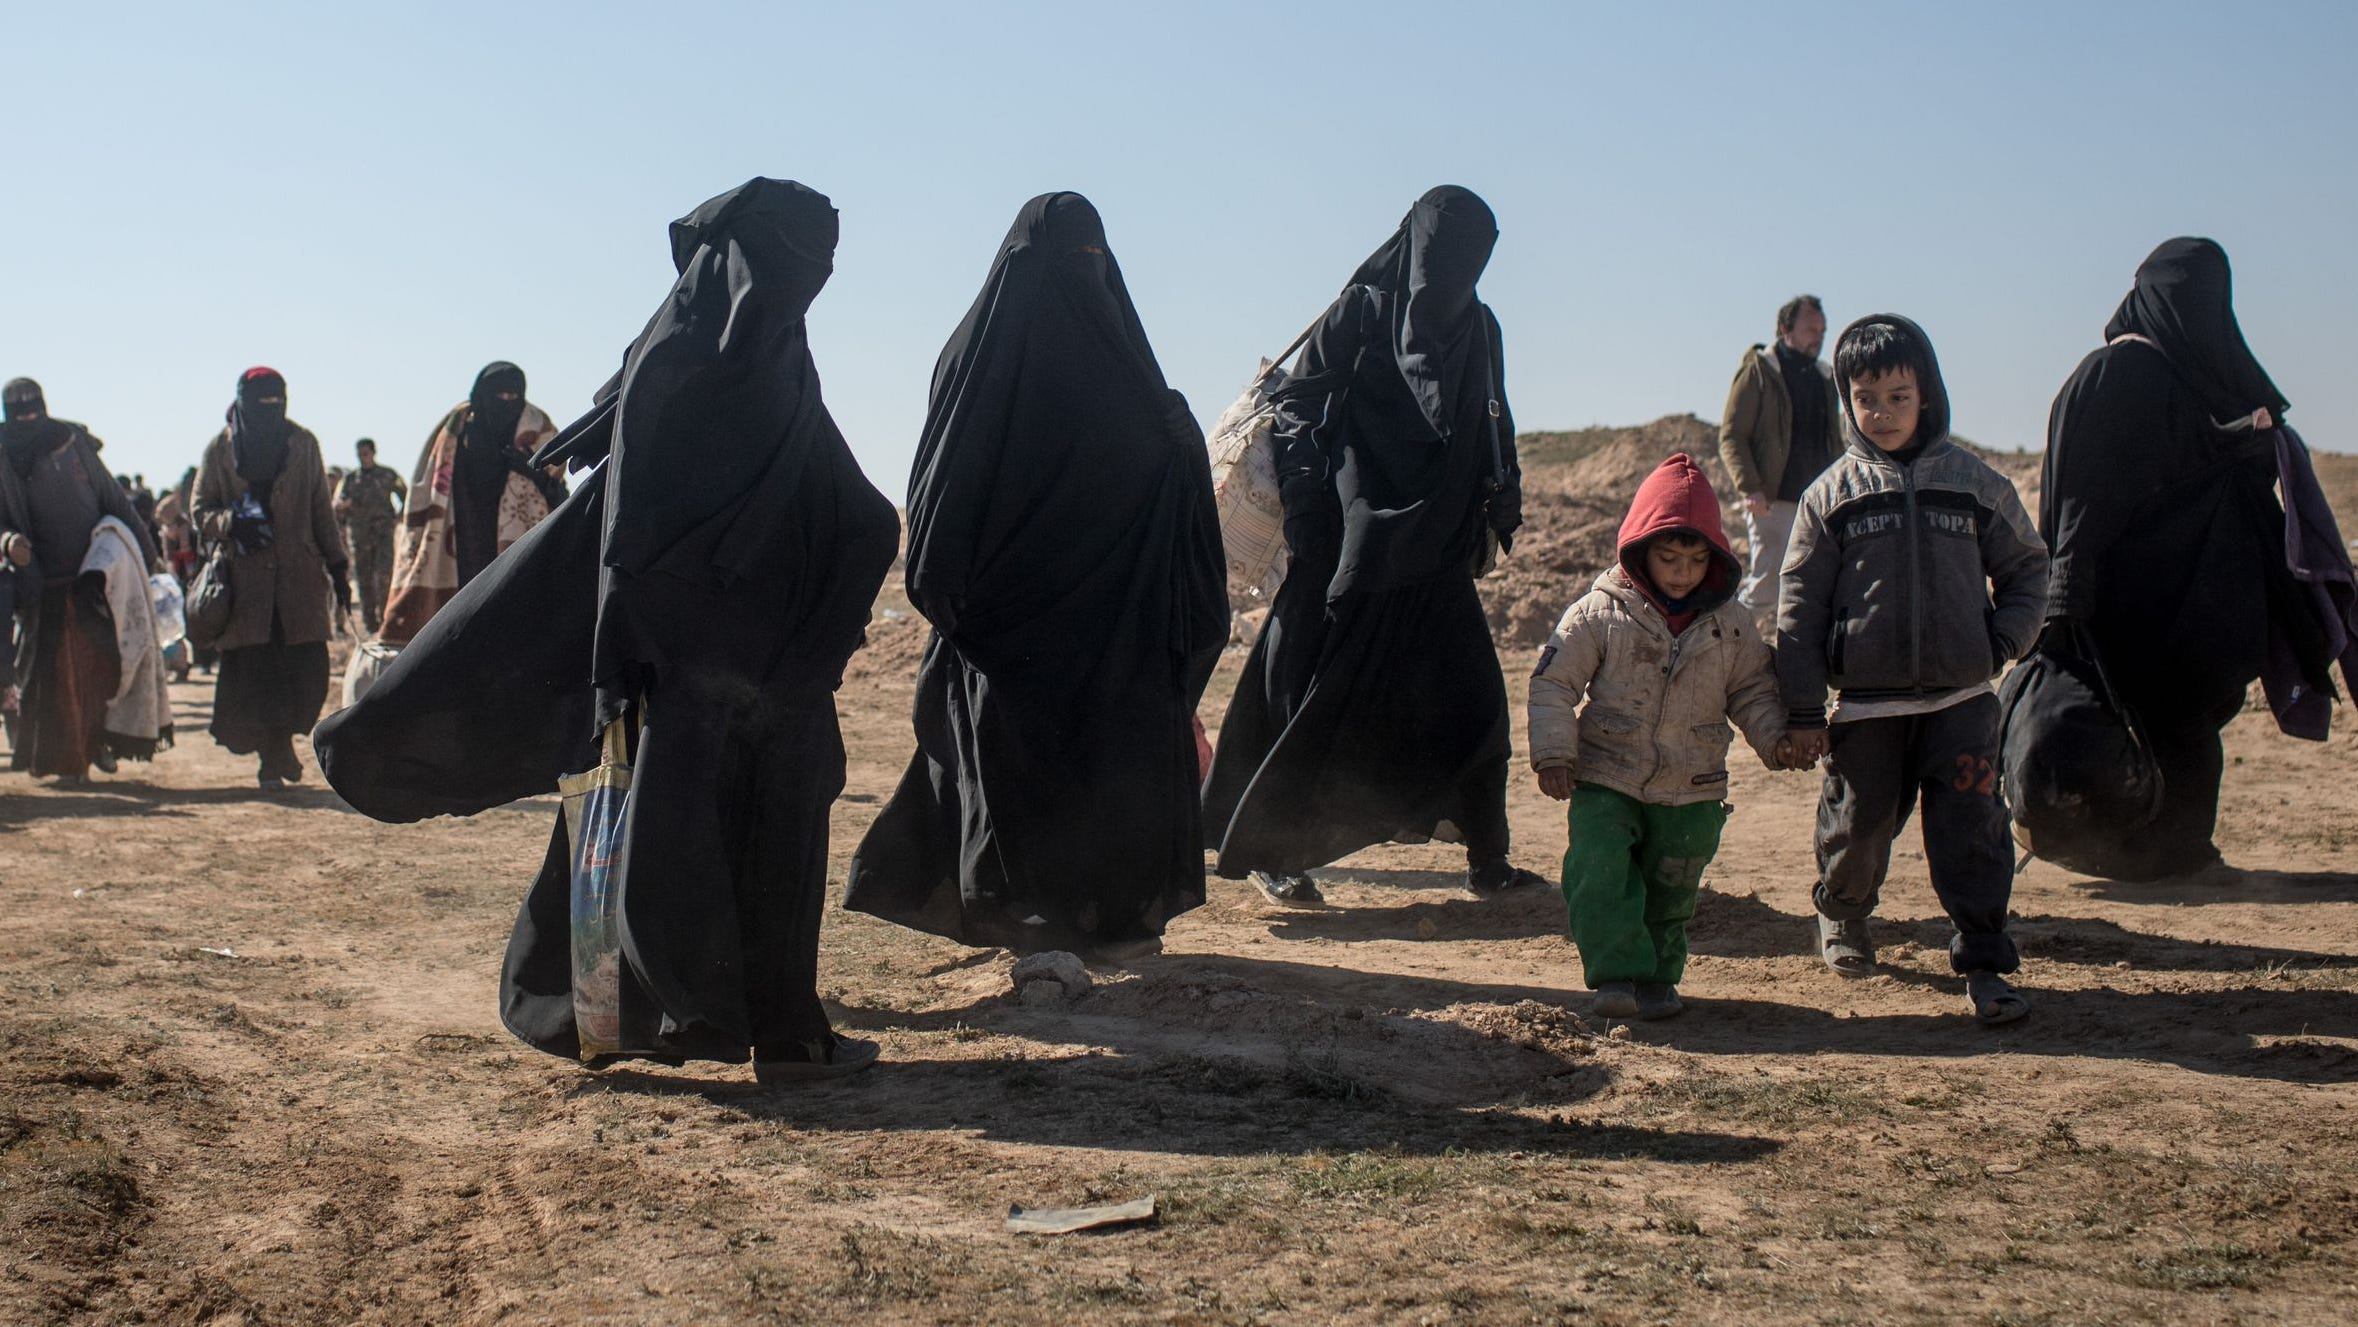 Civilians who have fled fighting in Bagouz, Syria, wait to board trucks after being screened by members of the U.S.-backed Syrian Democratic Forces in the Syrian desert on February 12, 2019.